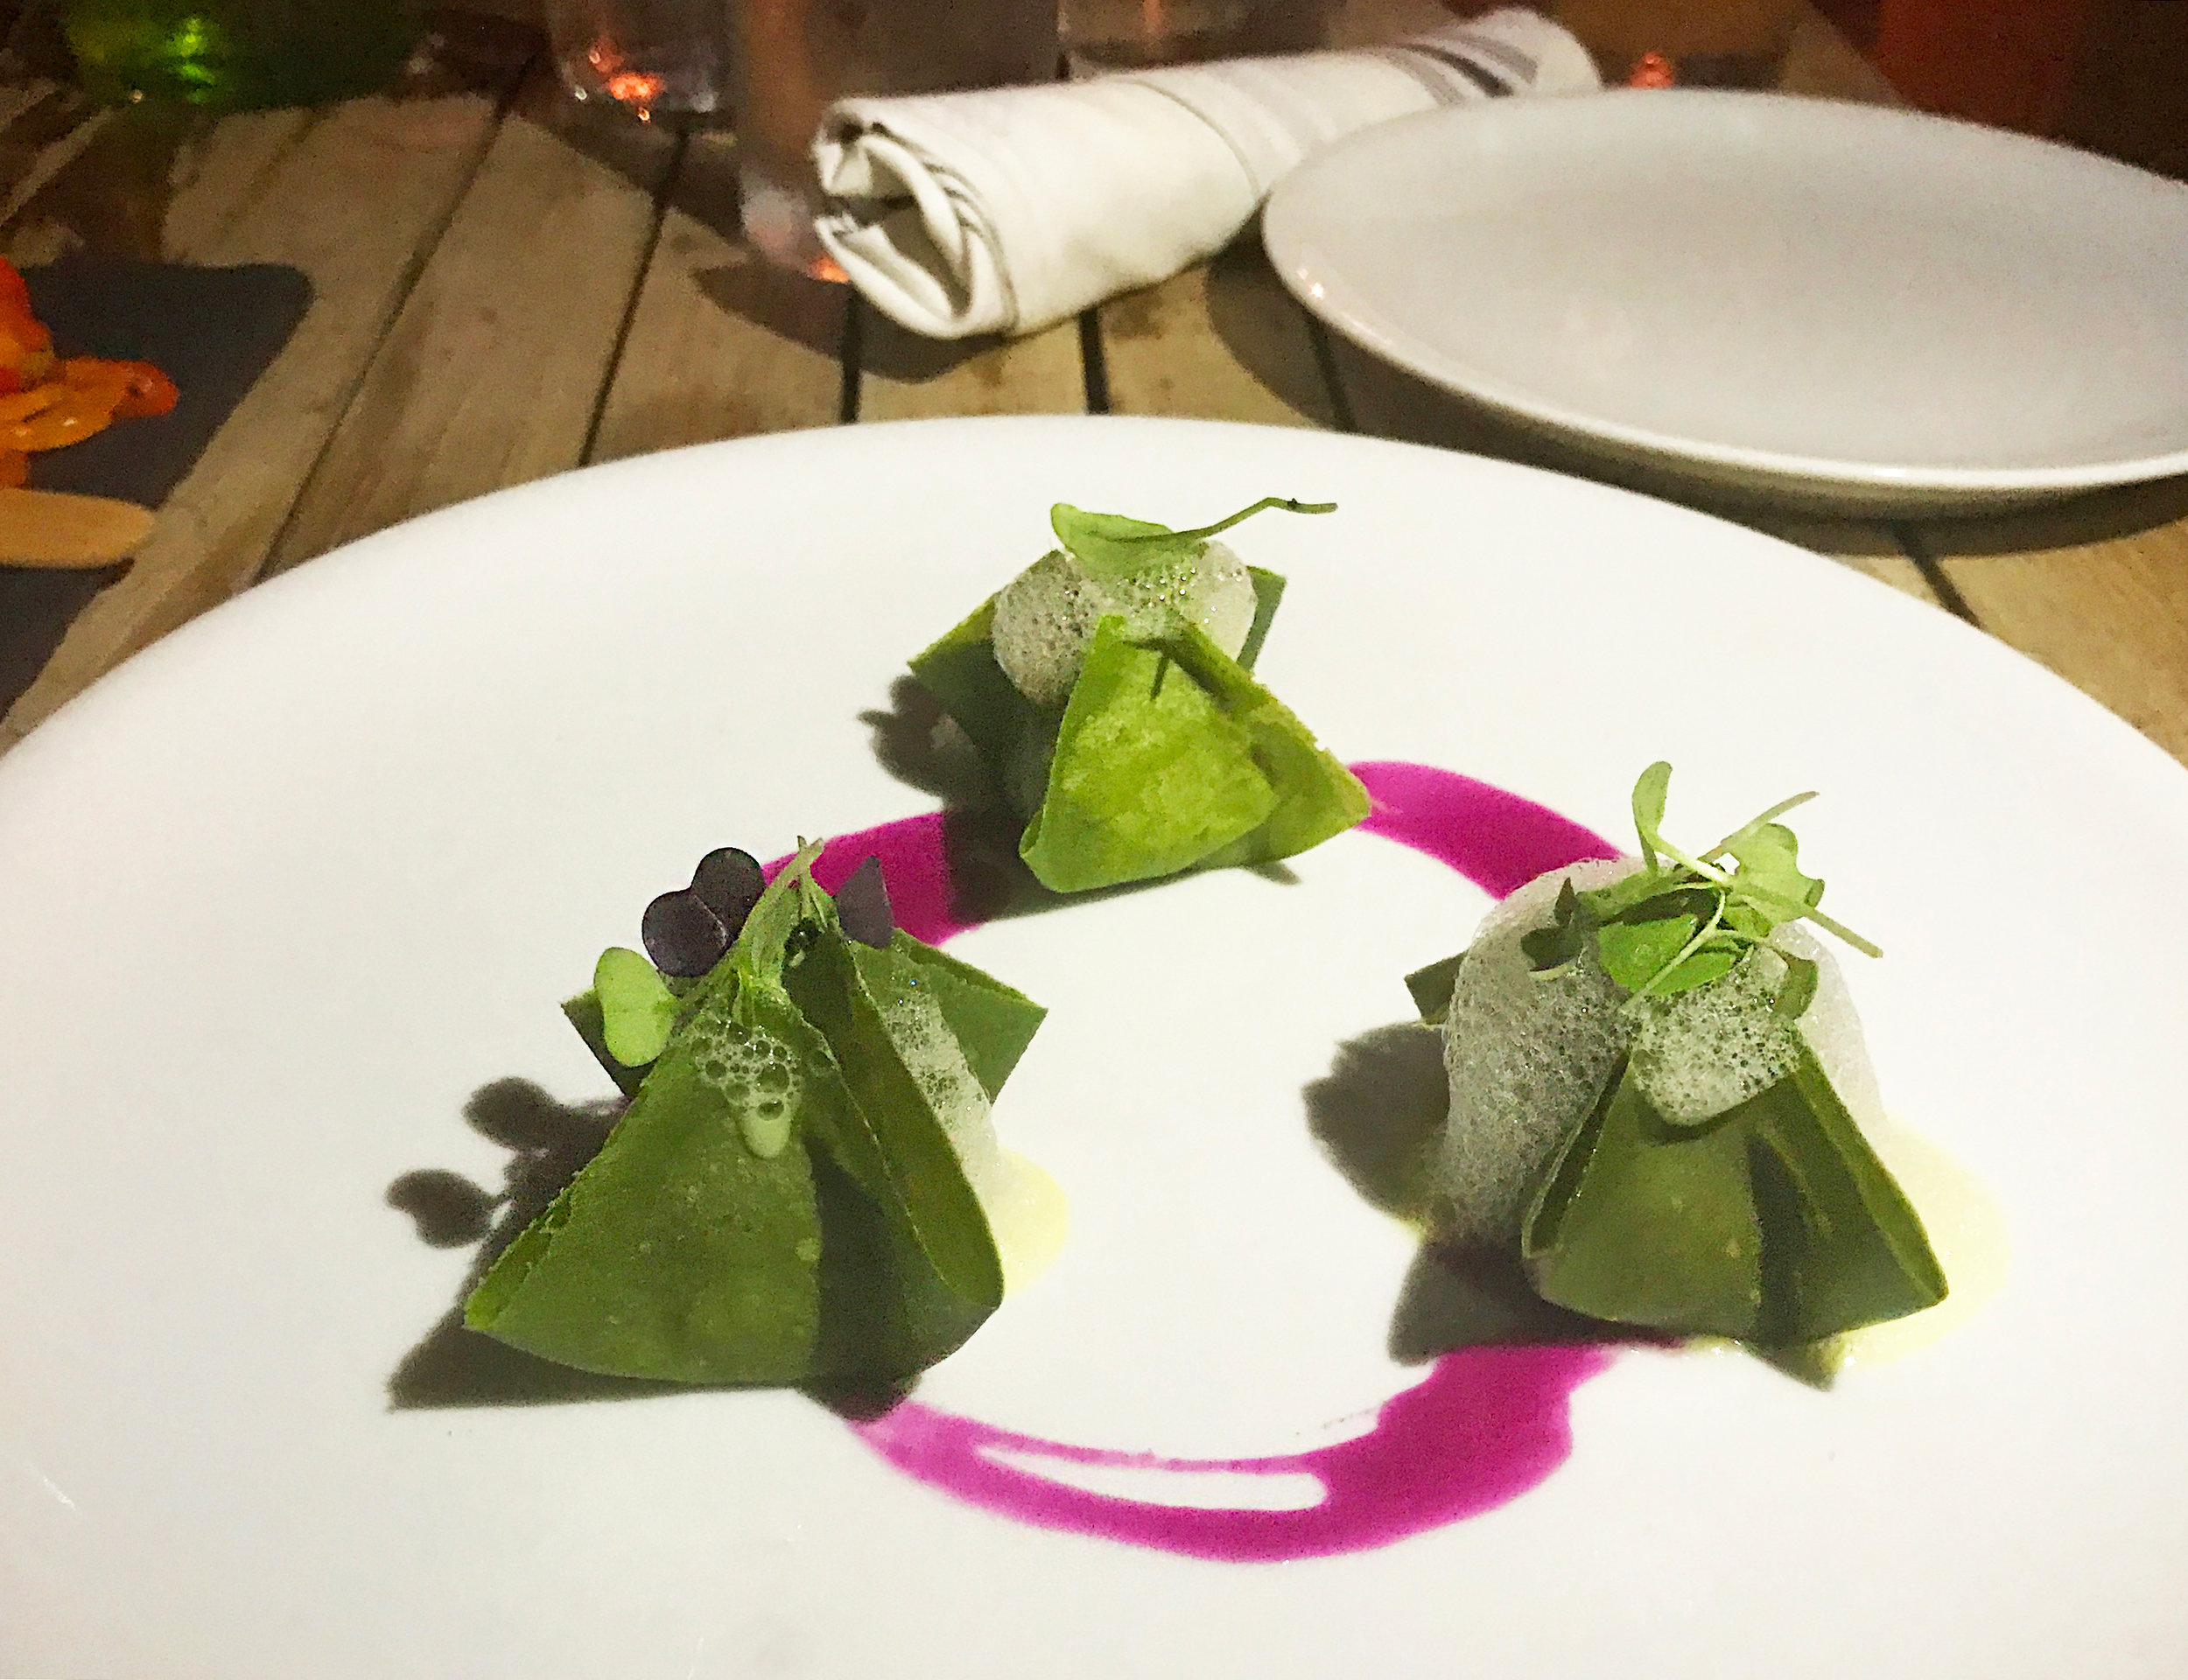 plant-food-and-wine-dumplings.jpg